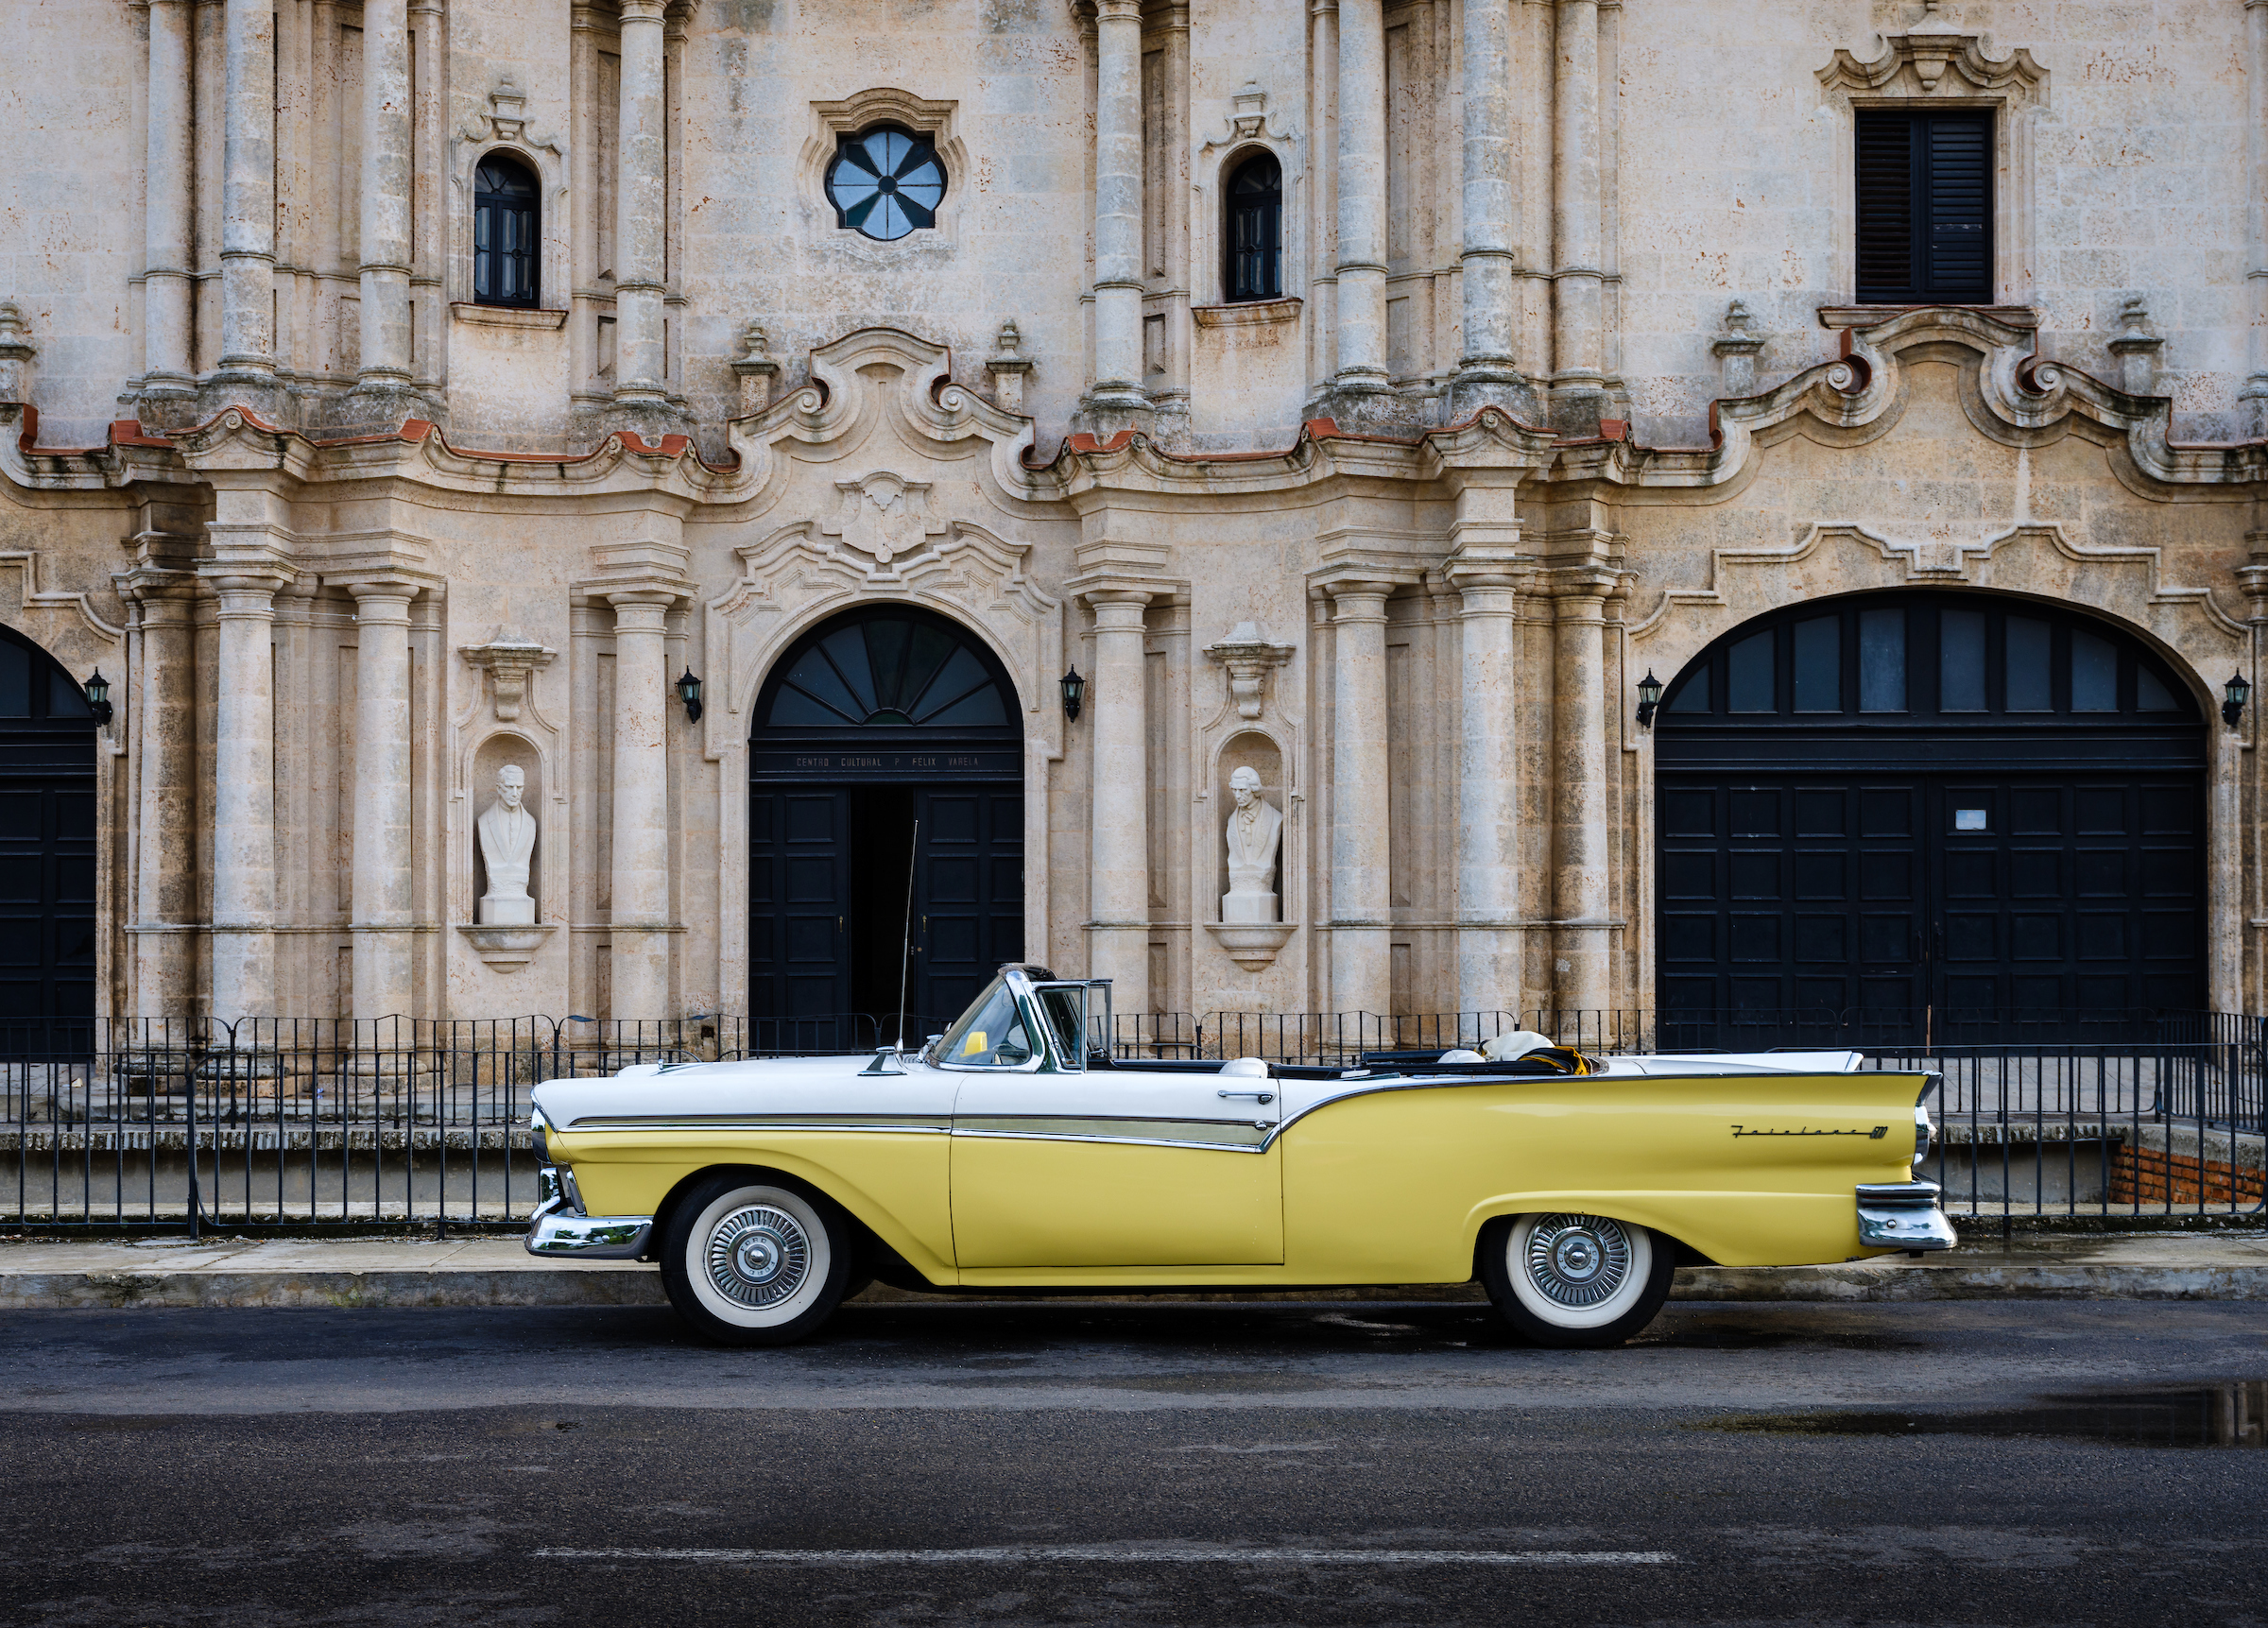 Ford Fairlane in Havana